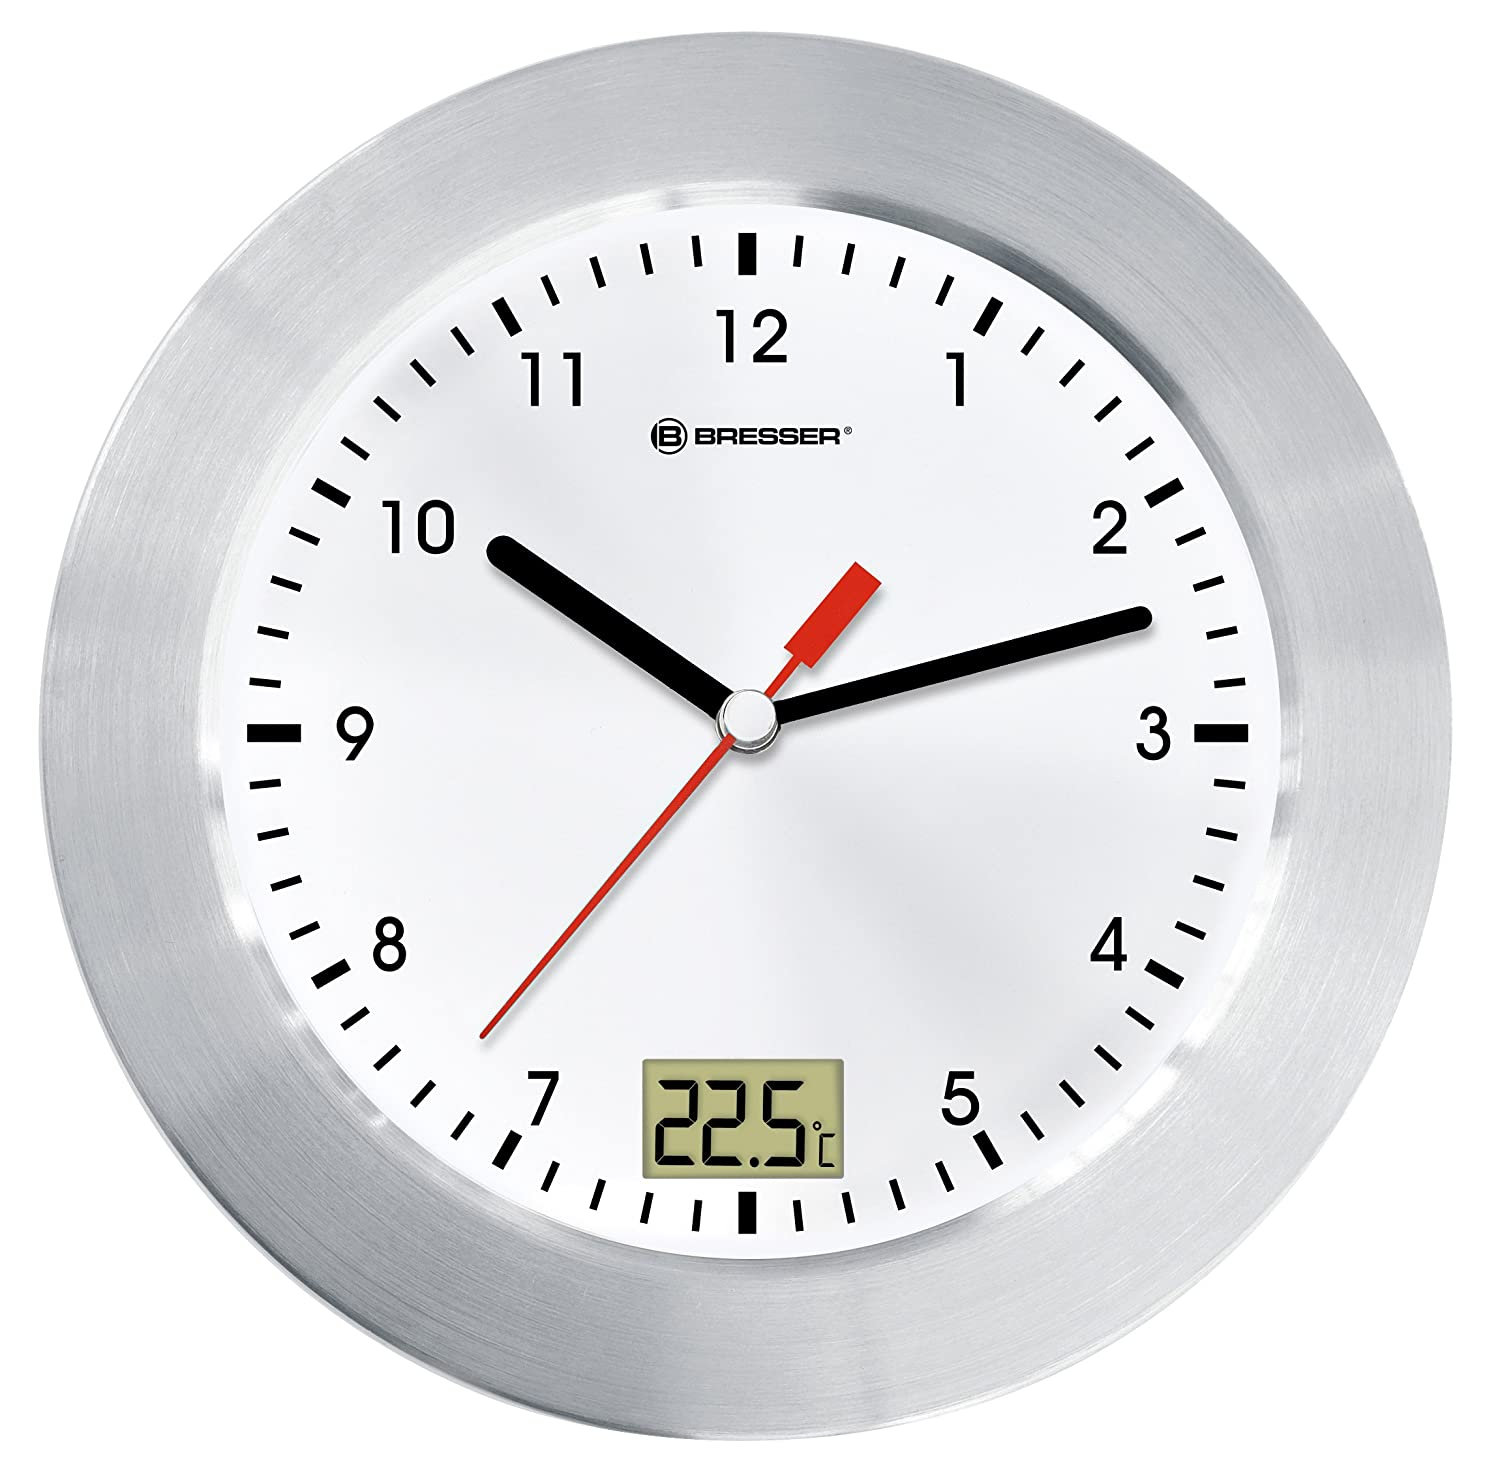 ff0f44c51d8af Bresser Wall Clock MyTime Bath for Bathroom with Temperature Display -  White/ Silver